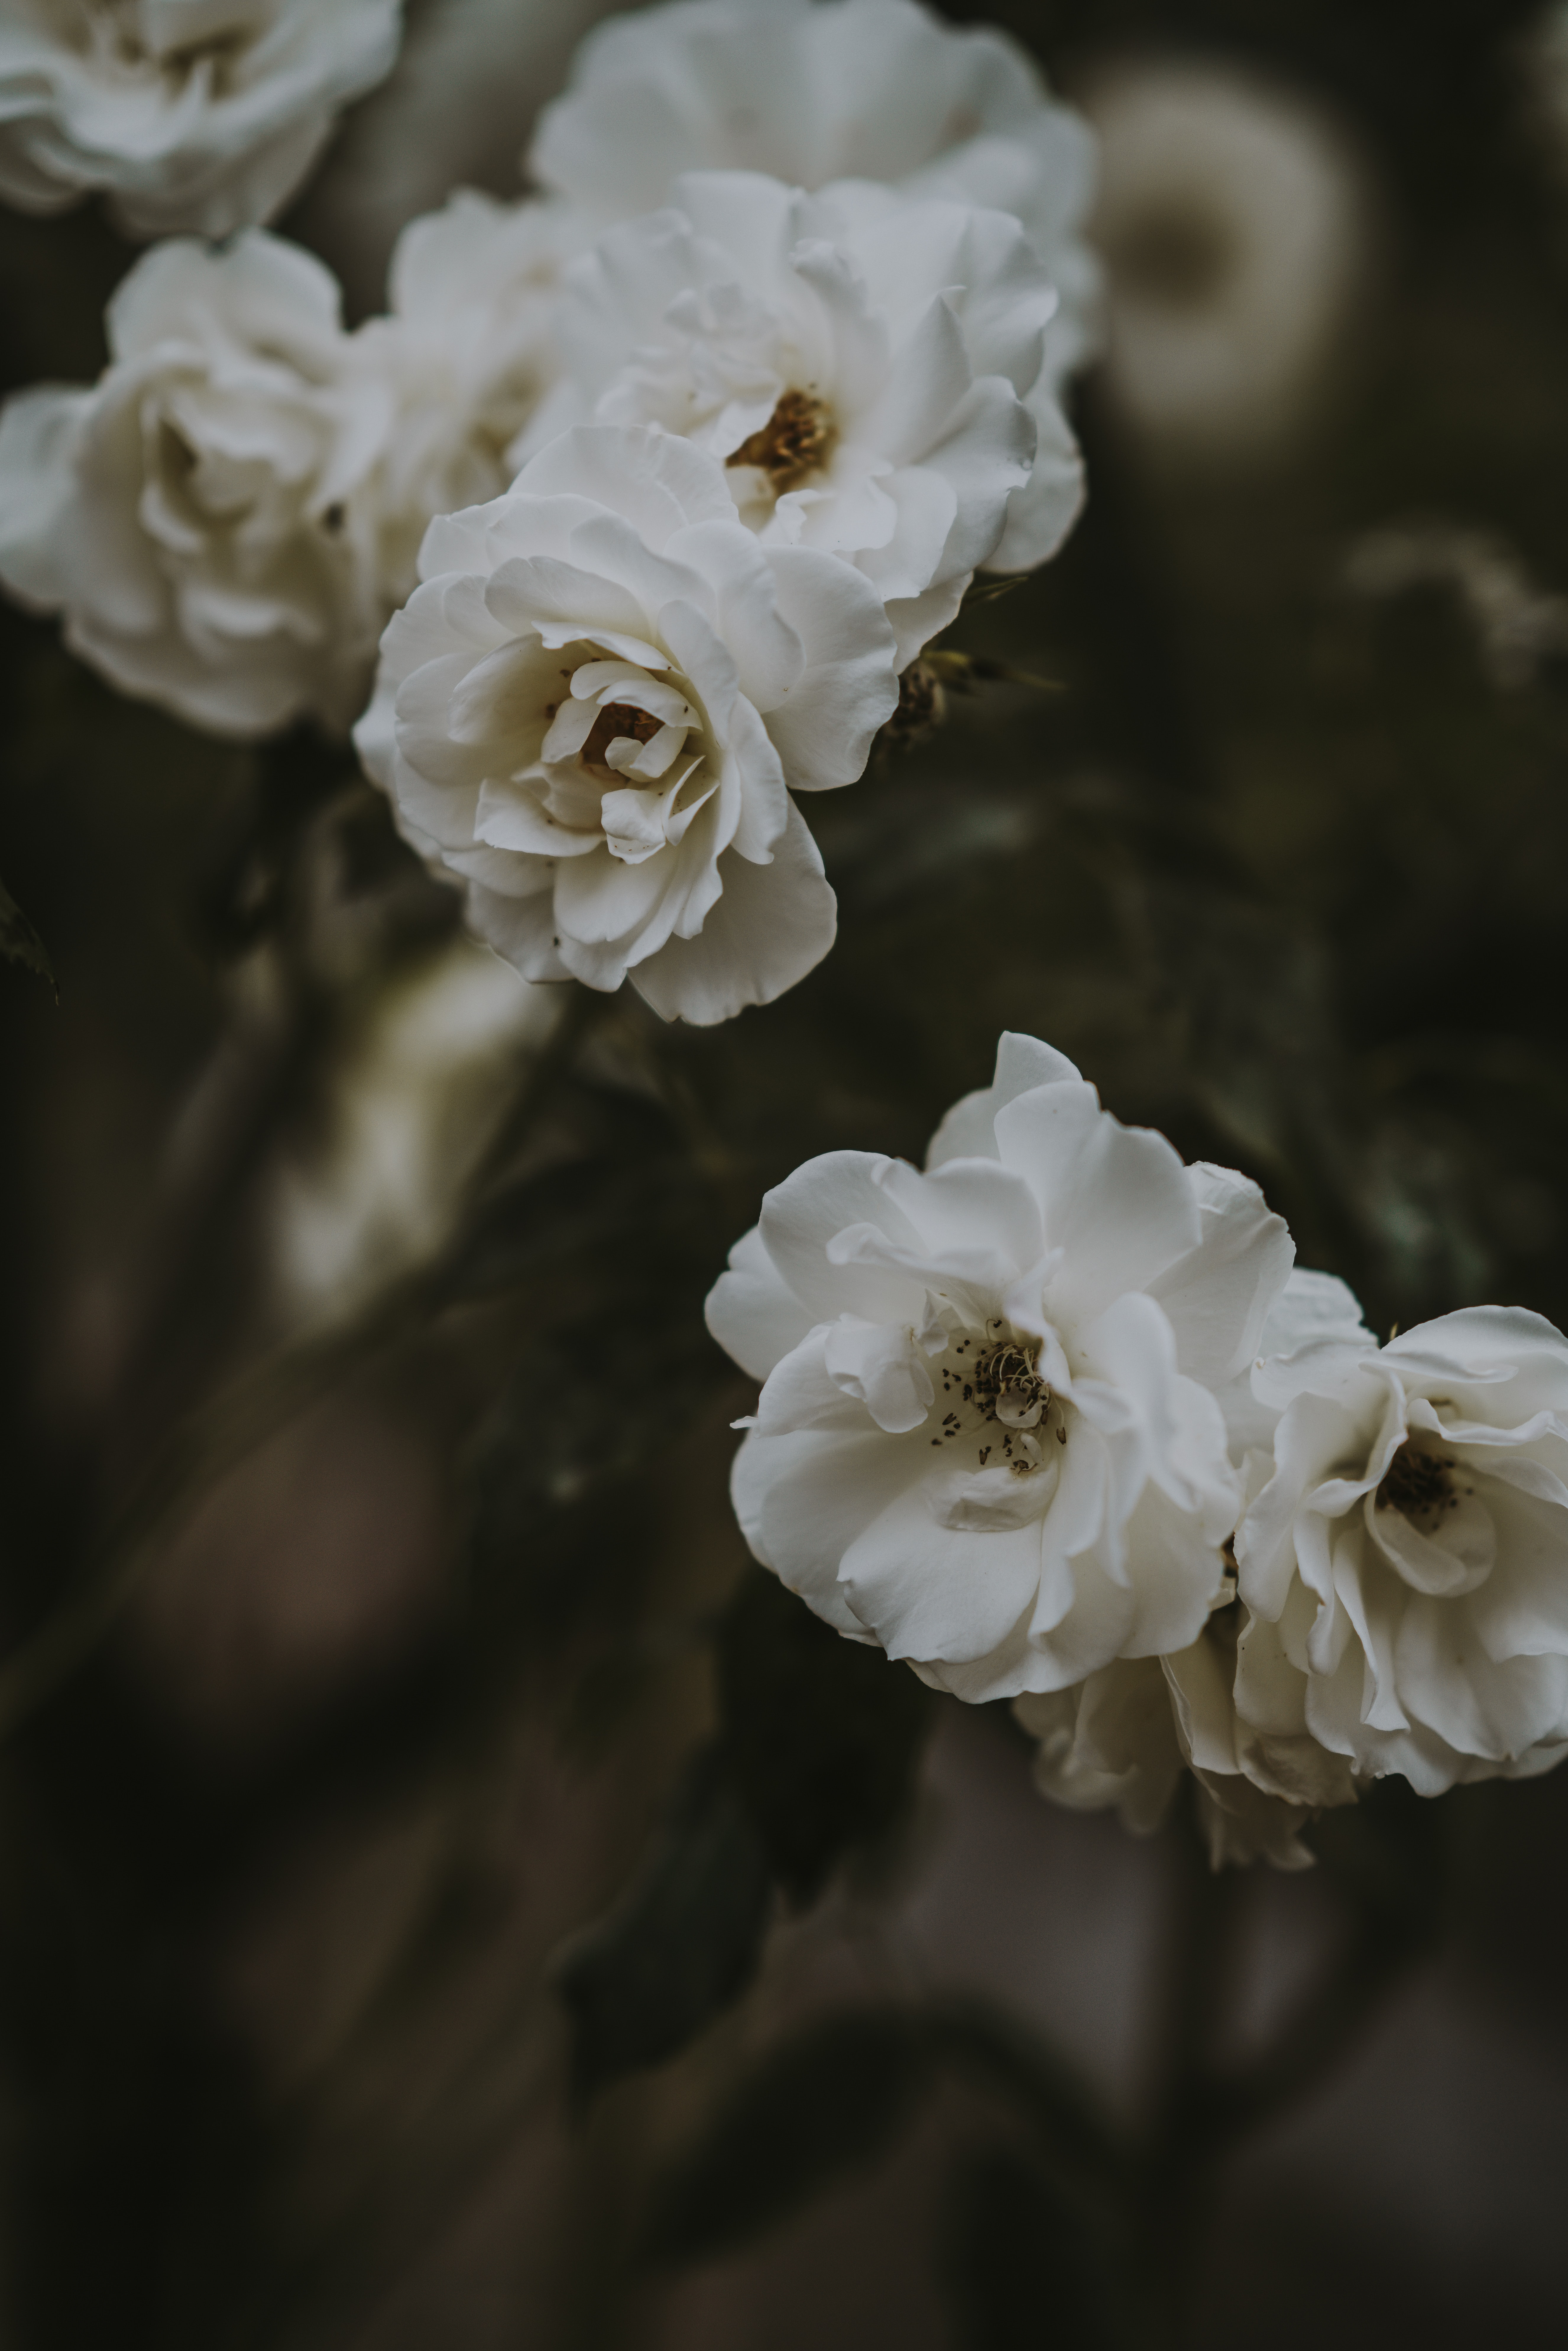 closeup photo of white petaled flowers